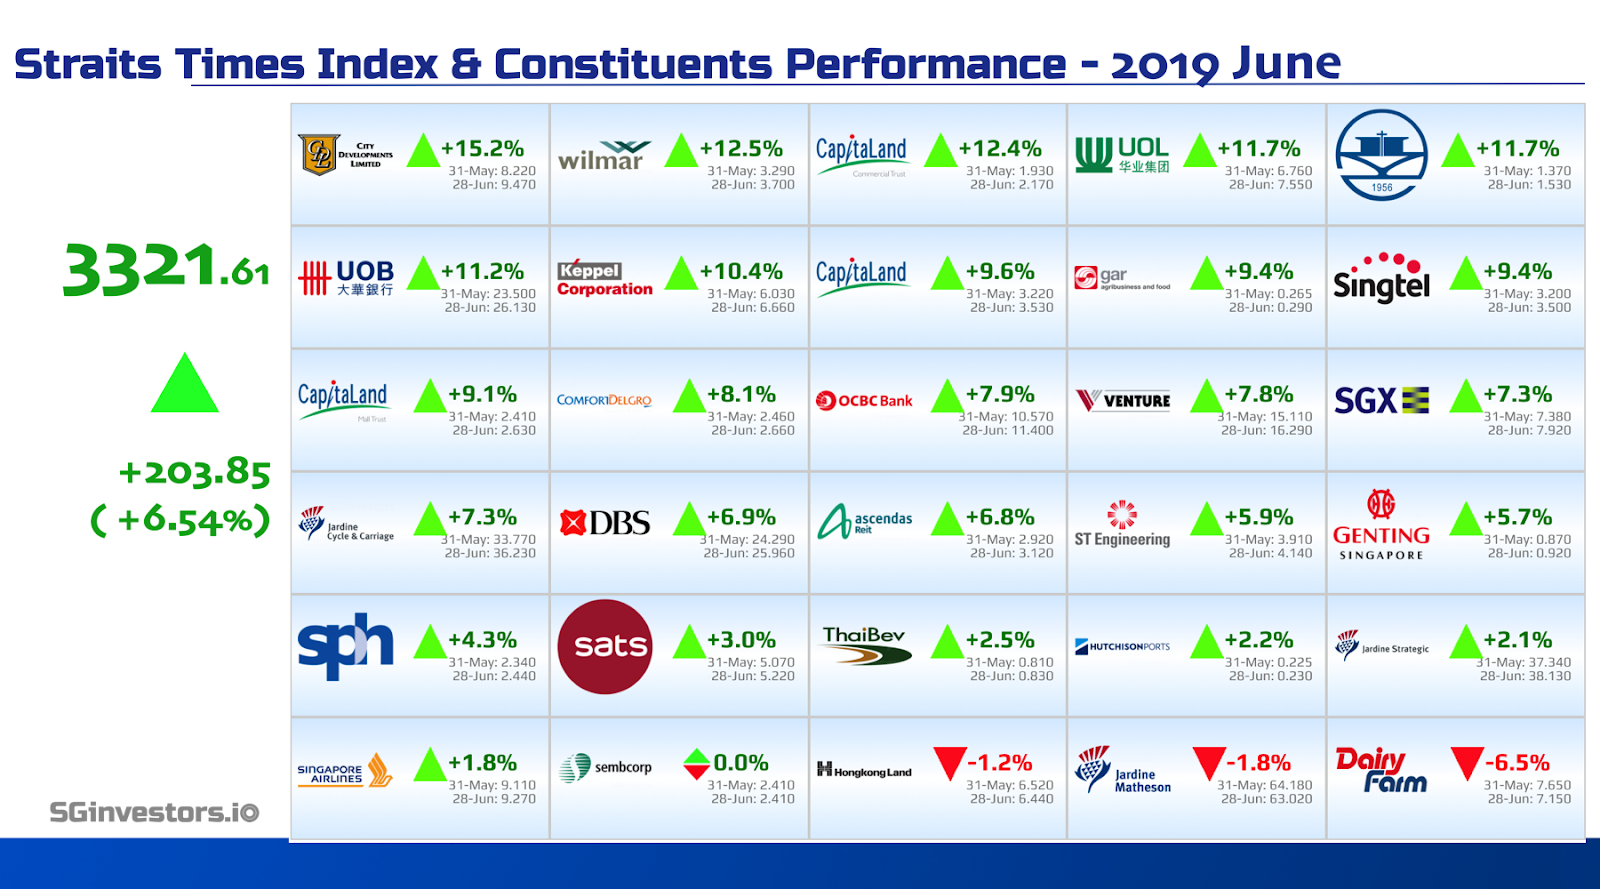 Performance of Straits Times Index (STI) Constituents in June 2019